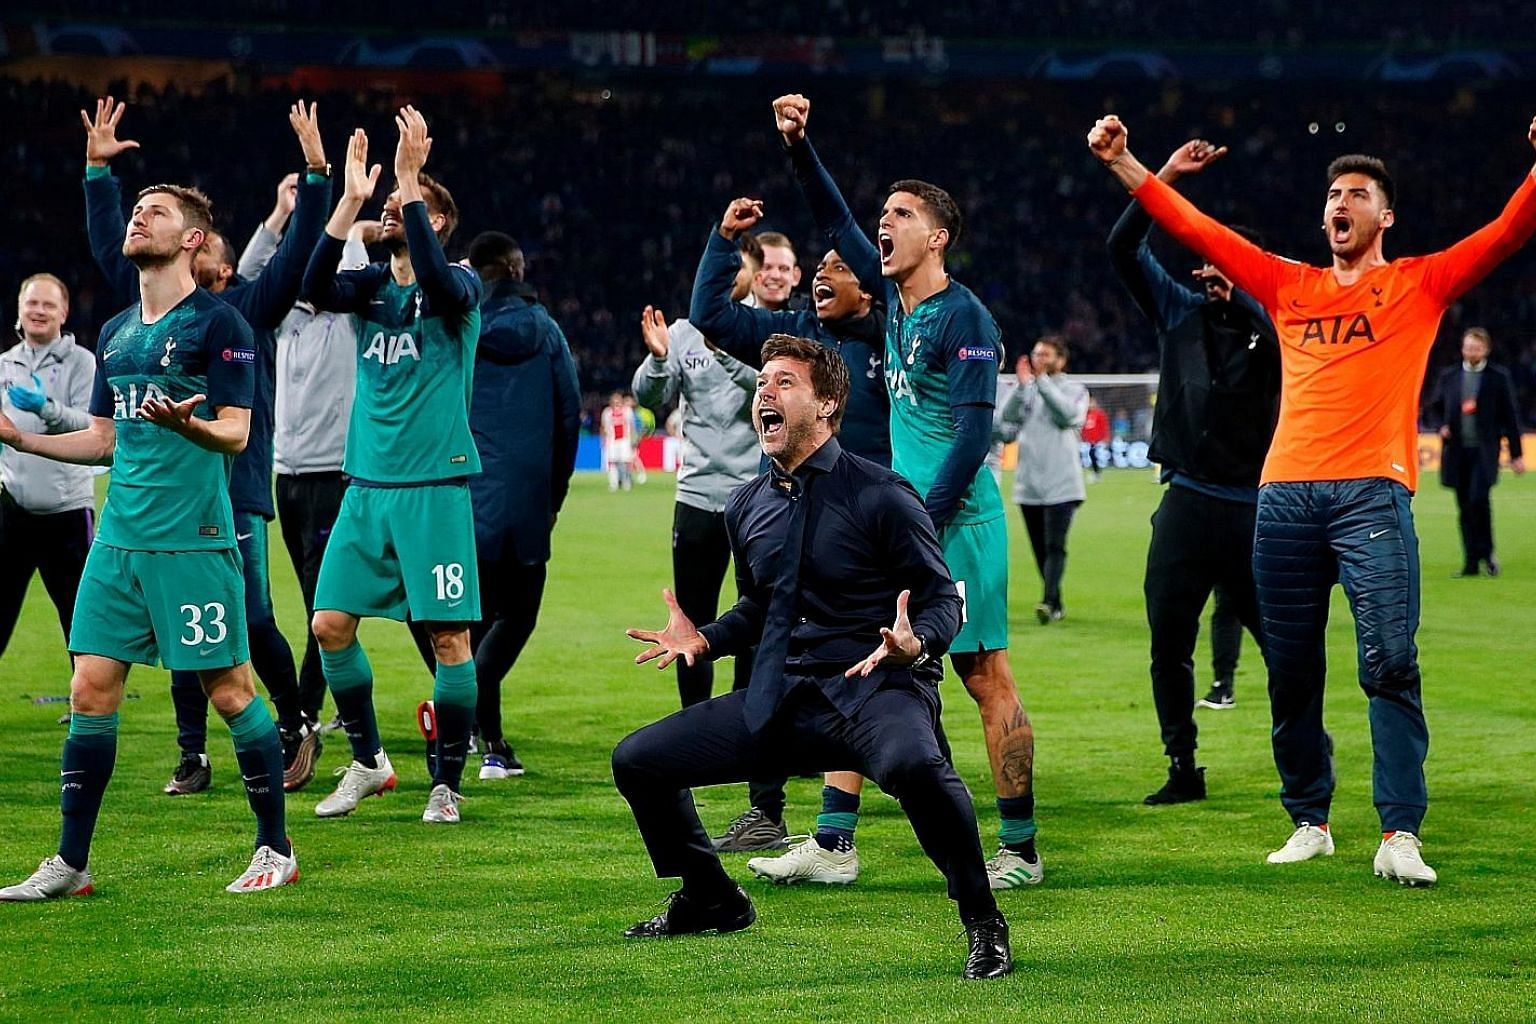 An ecstatic Tottenham manager Mauricio Pochettino finding it hard to control his emotions after his team's fightback to defeat Ajax 3-2 on Wednesday and going through to the Champions League final on away goals. The Argentinian has yet to win a troph